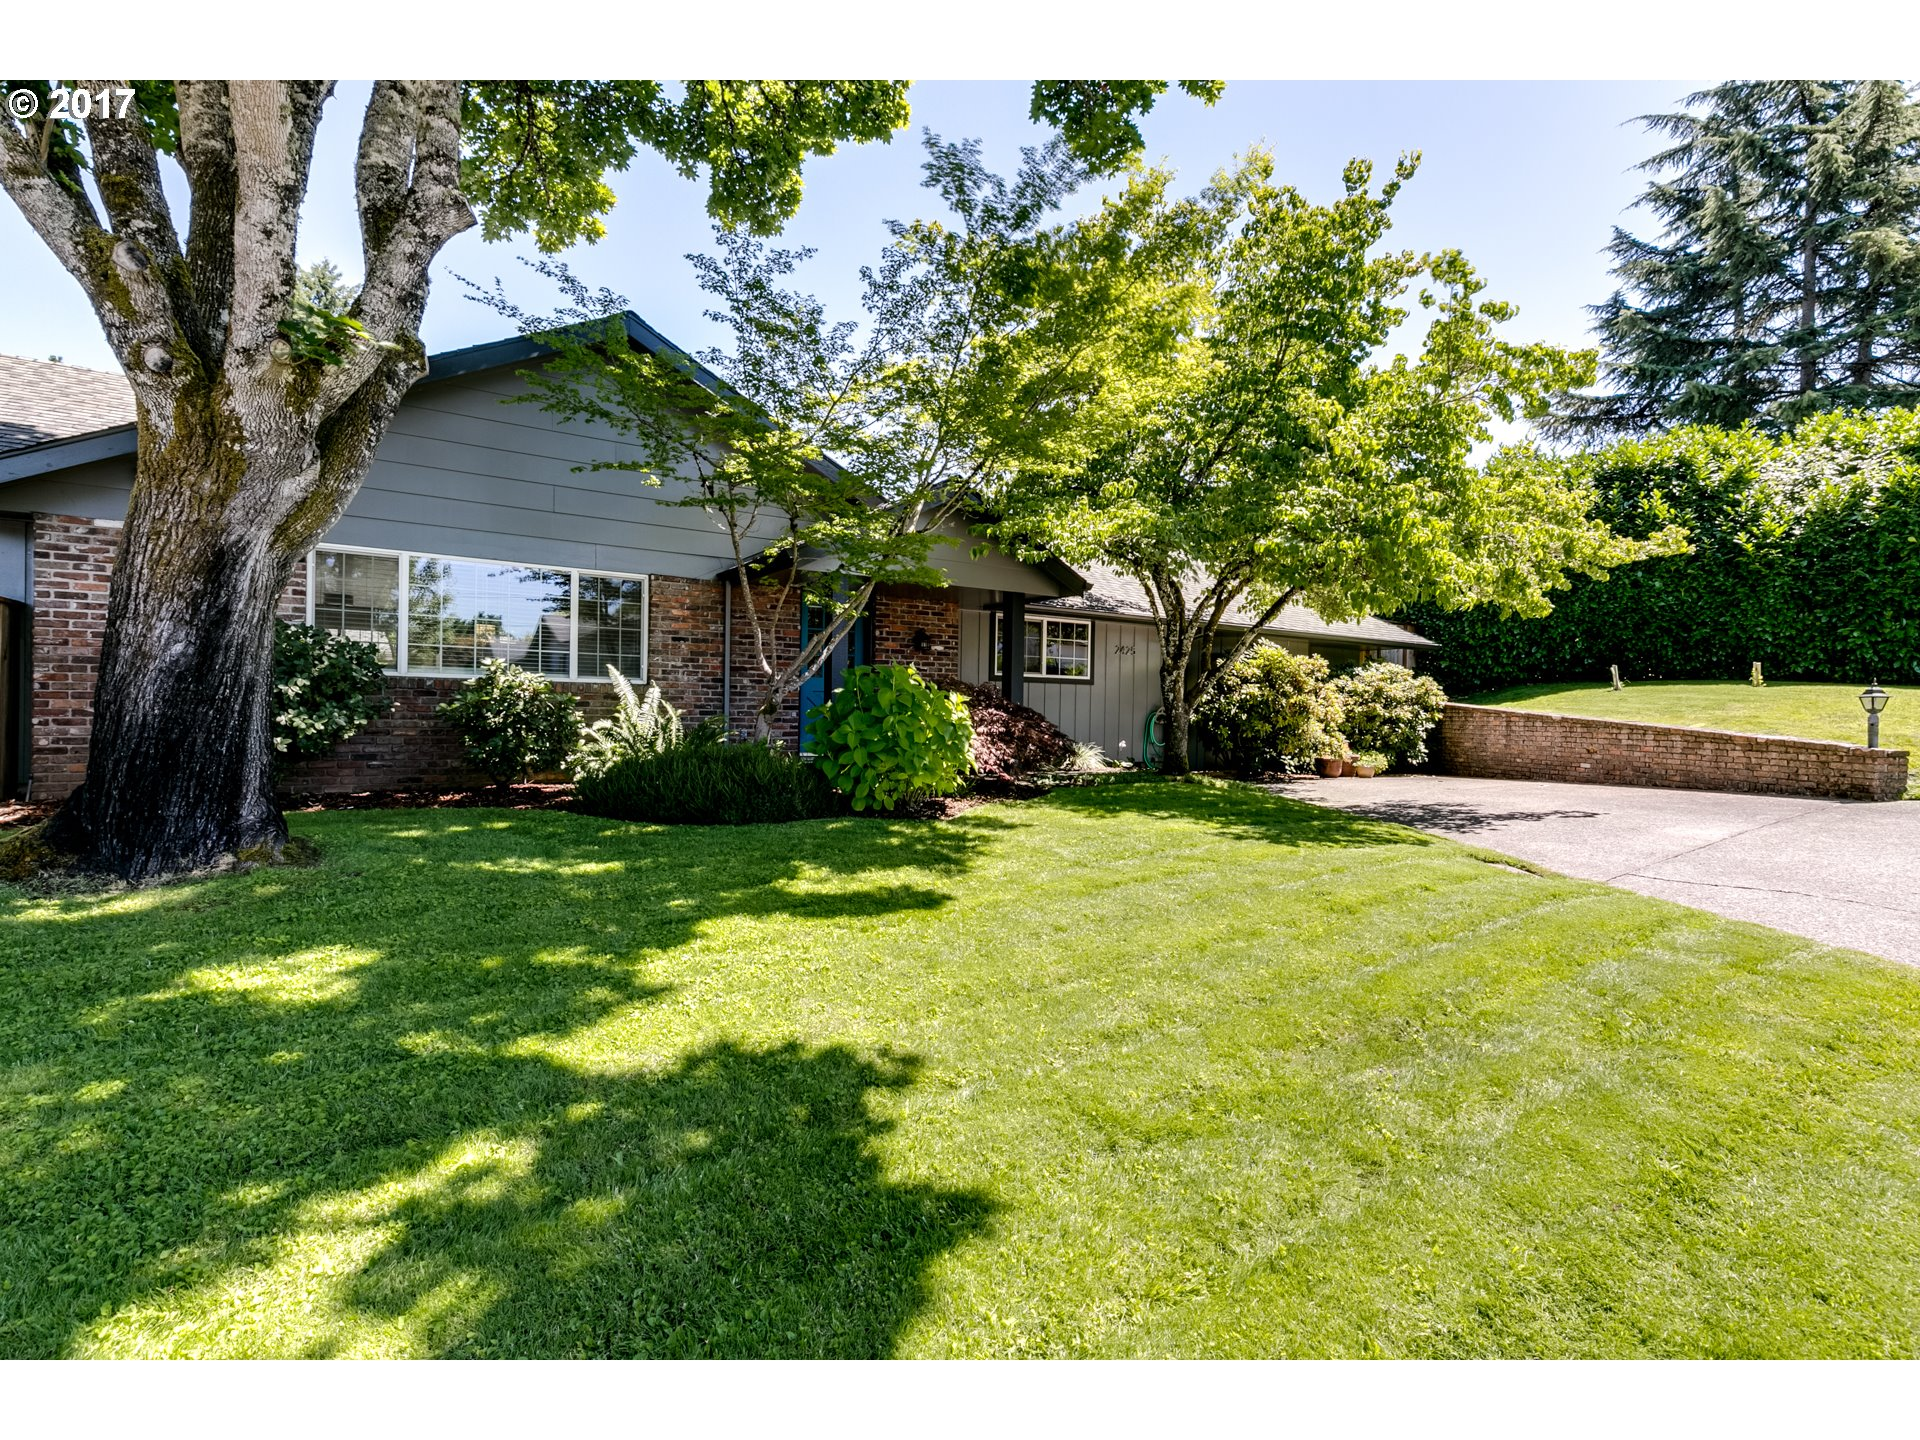 2423 34TH ST, Springfield, OR 97477